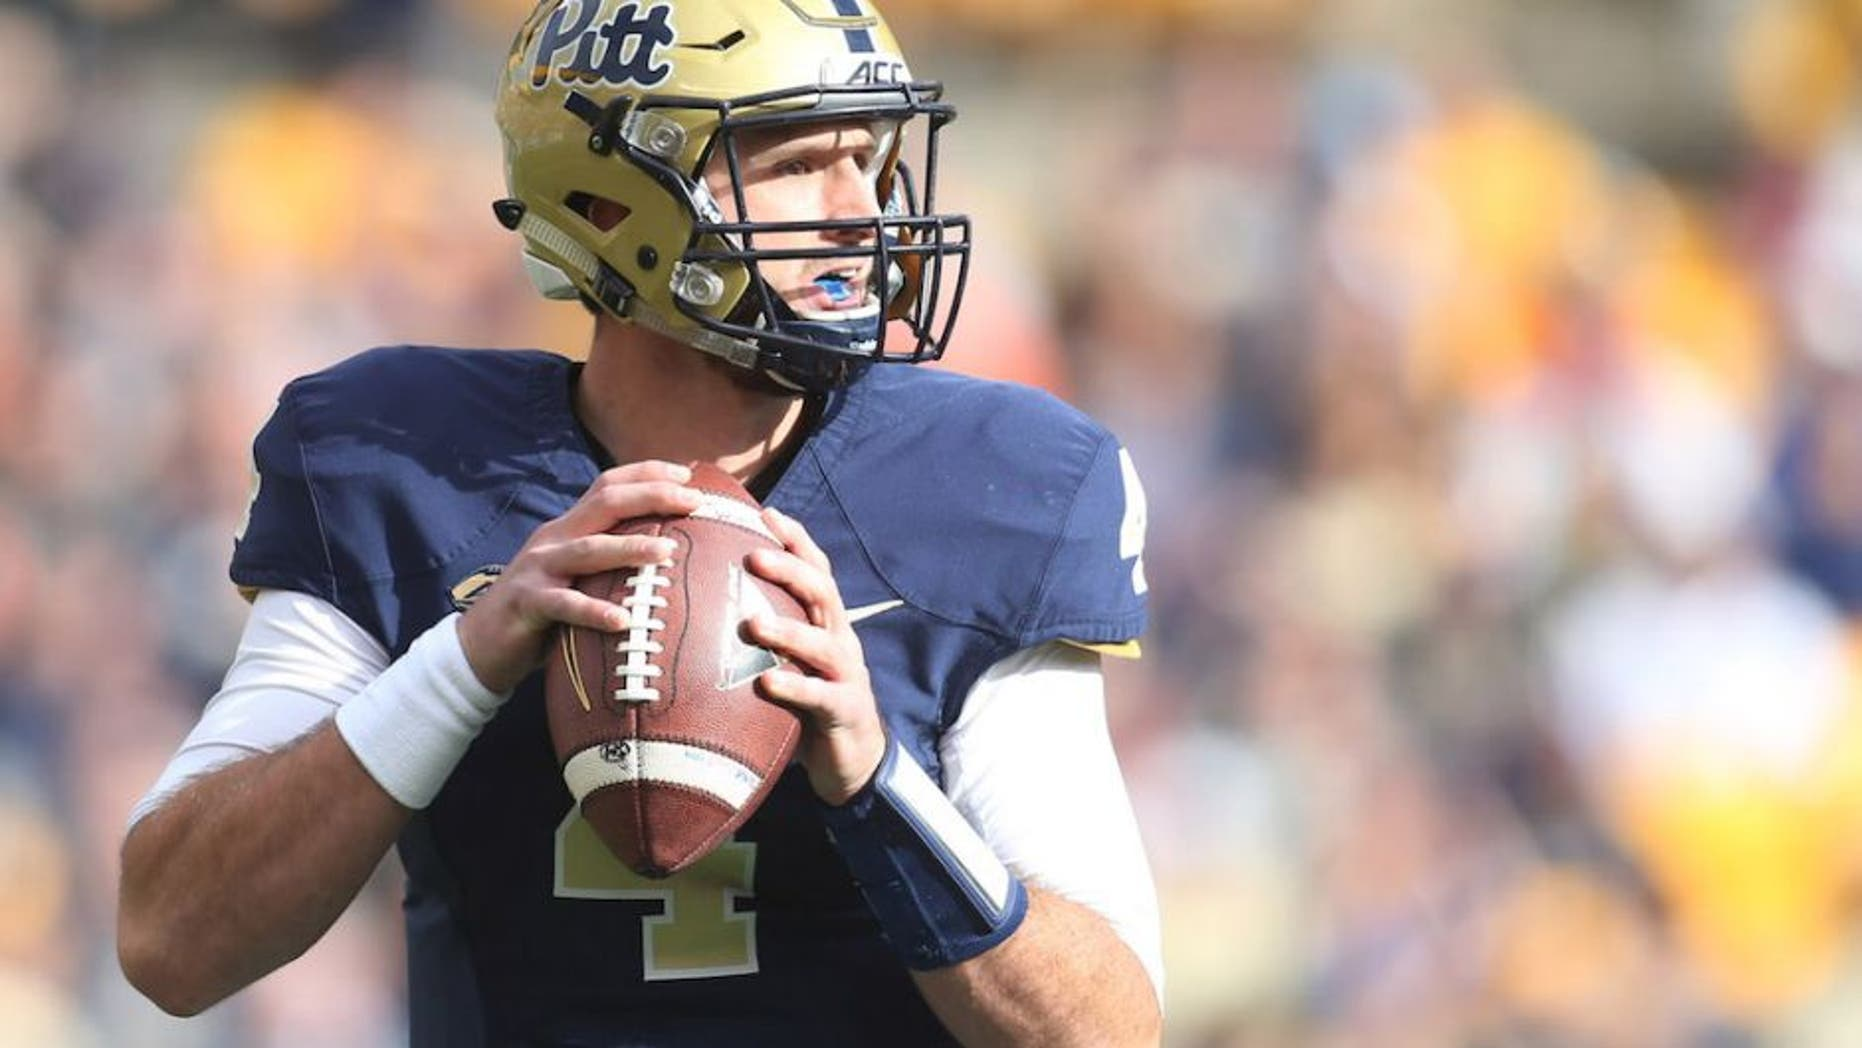 Nov 27, 2015; Pittsburgh, PA, USA; Pittsburgh Panthers quarterback Nathan Peterman (4) looks to pass against the Miami Hurricanes during the first quarter at Heinz Field. Mandatory Credit: Charles LeClaire-USA TODAY Sports